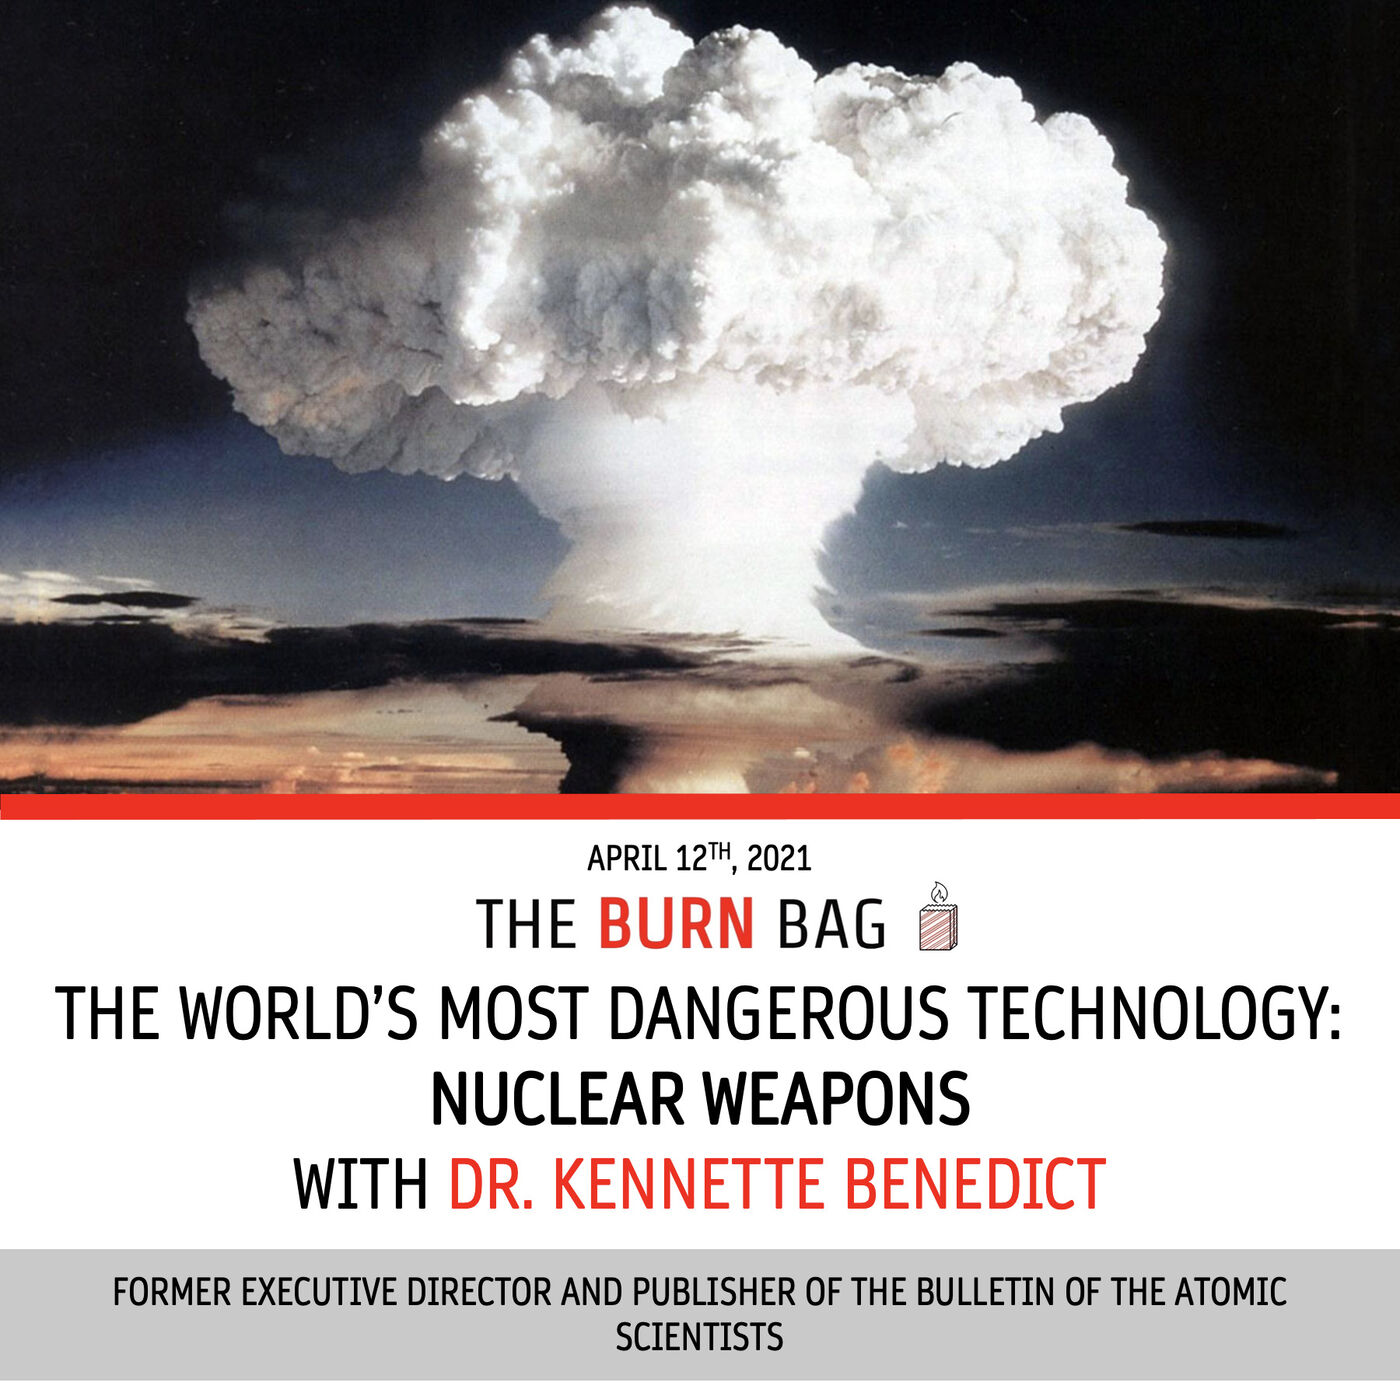 The World's Most Dangerous Technology: Nuclear Weapons with Dr. Kennette Benedict